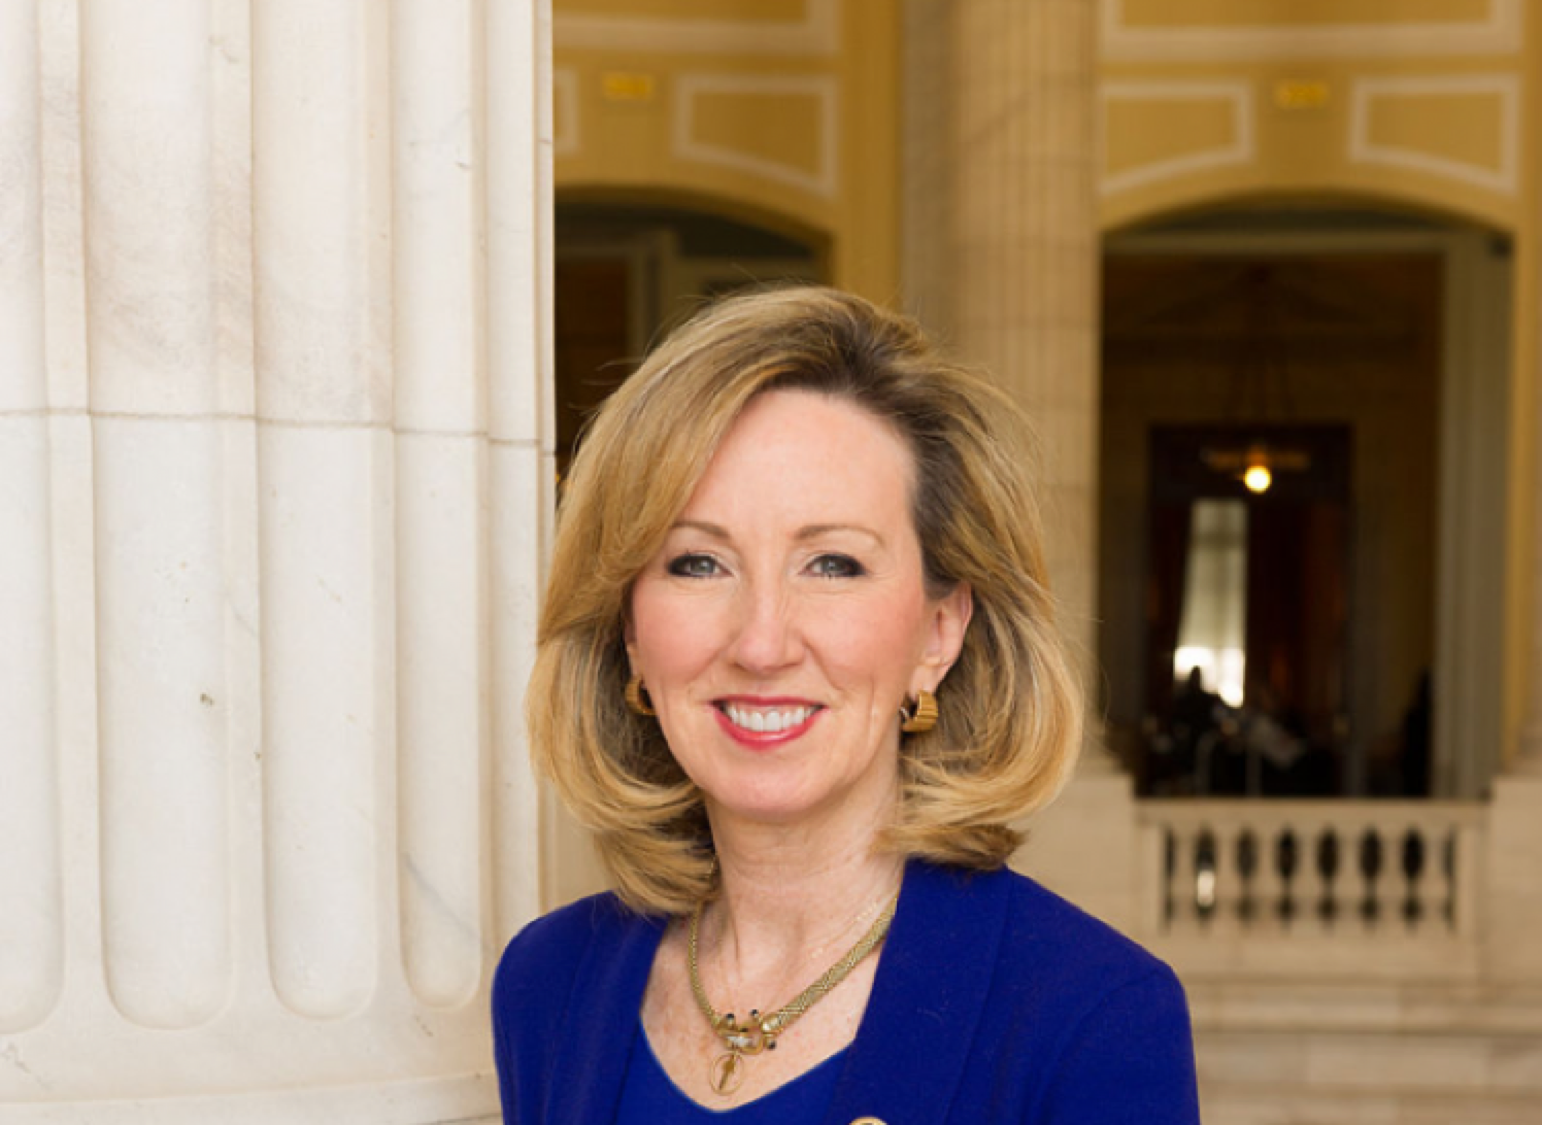 Incumbent Congresswoman Barbara Comstock defeated challenger Shak Hill in the primary to be the Republican nominee for the House of Representatives from Virginia's 10th Congressional District. The unofficial vote results posted […]